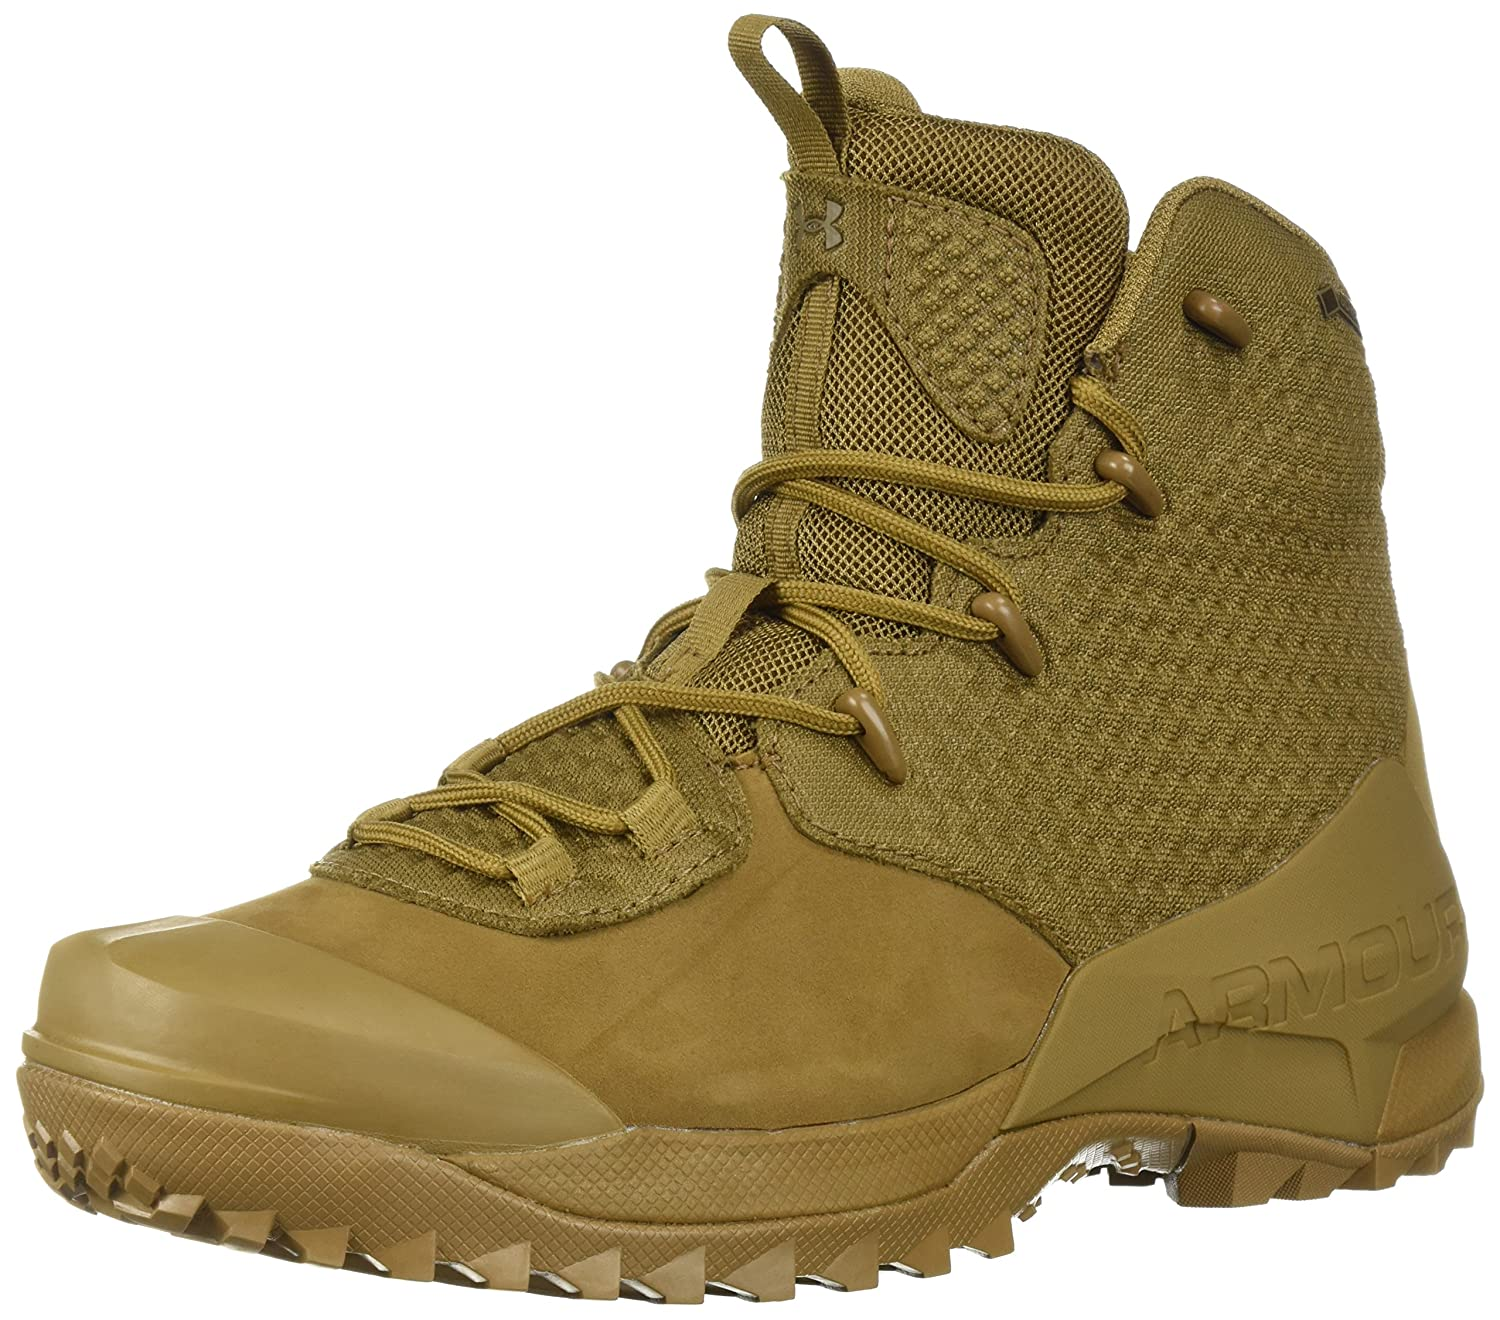 Under Armour メンズ Under Armour B071LHPGYB 12.5 D(M) US|Coyote Brown/Coyote Brown Coyote Brown/Coyote Brown 12.5 D(M) US